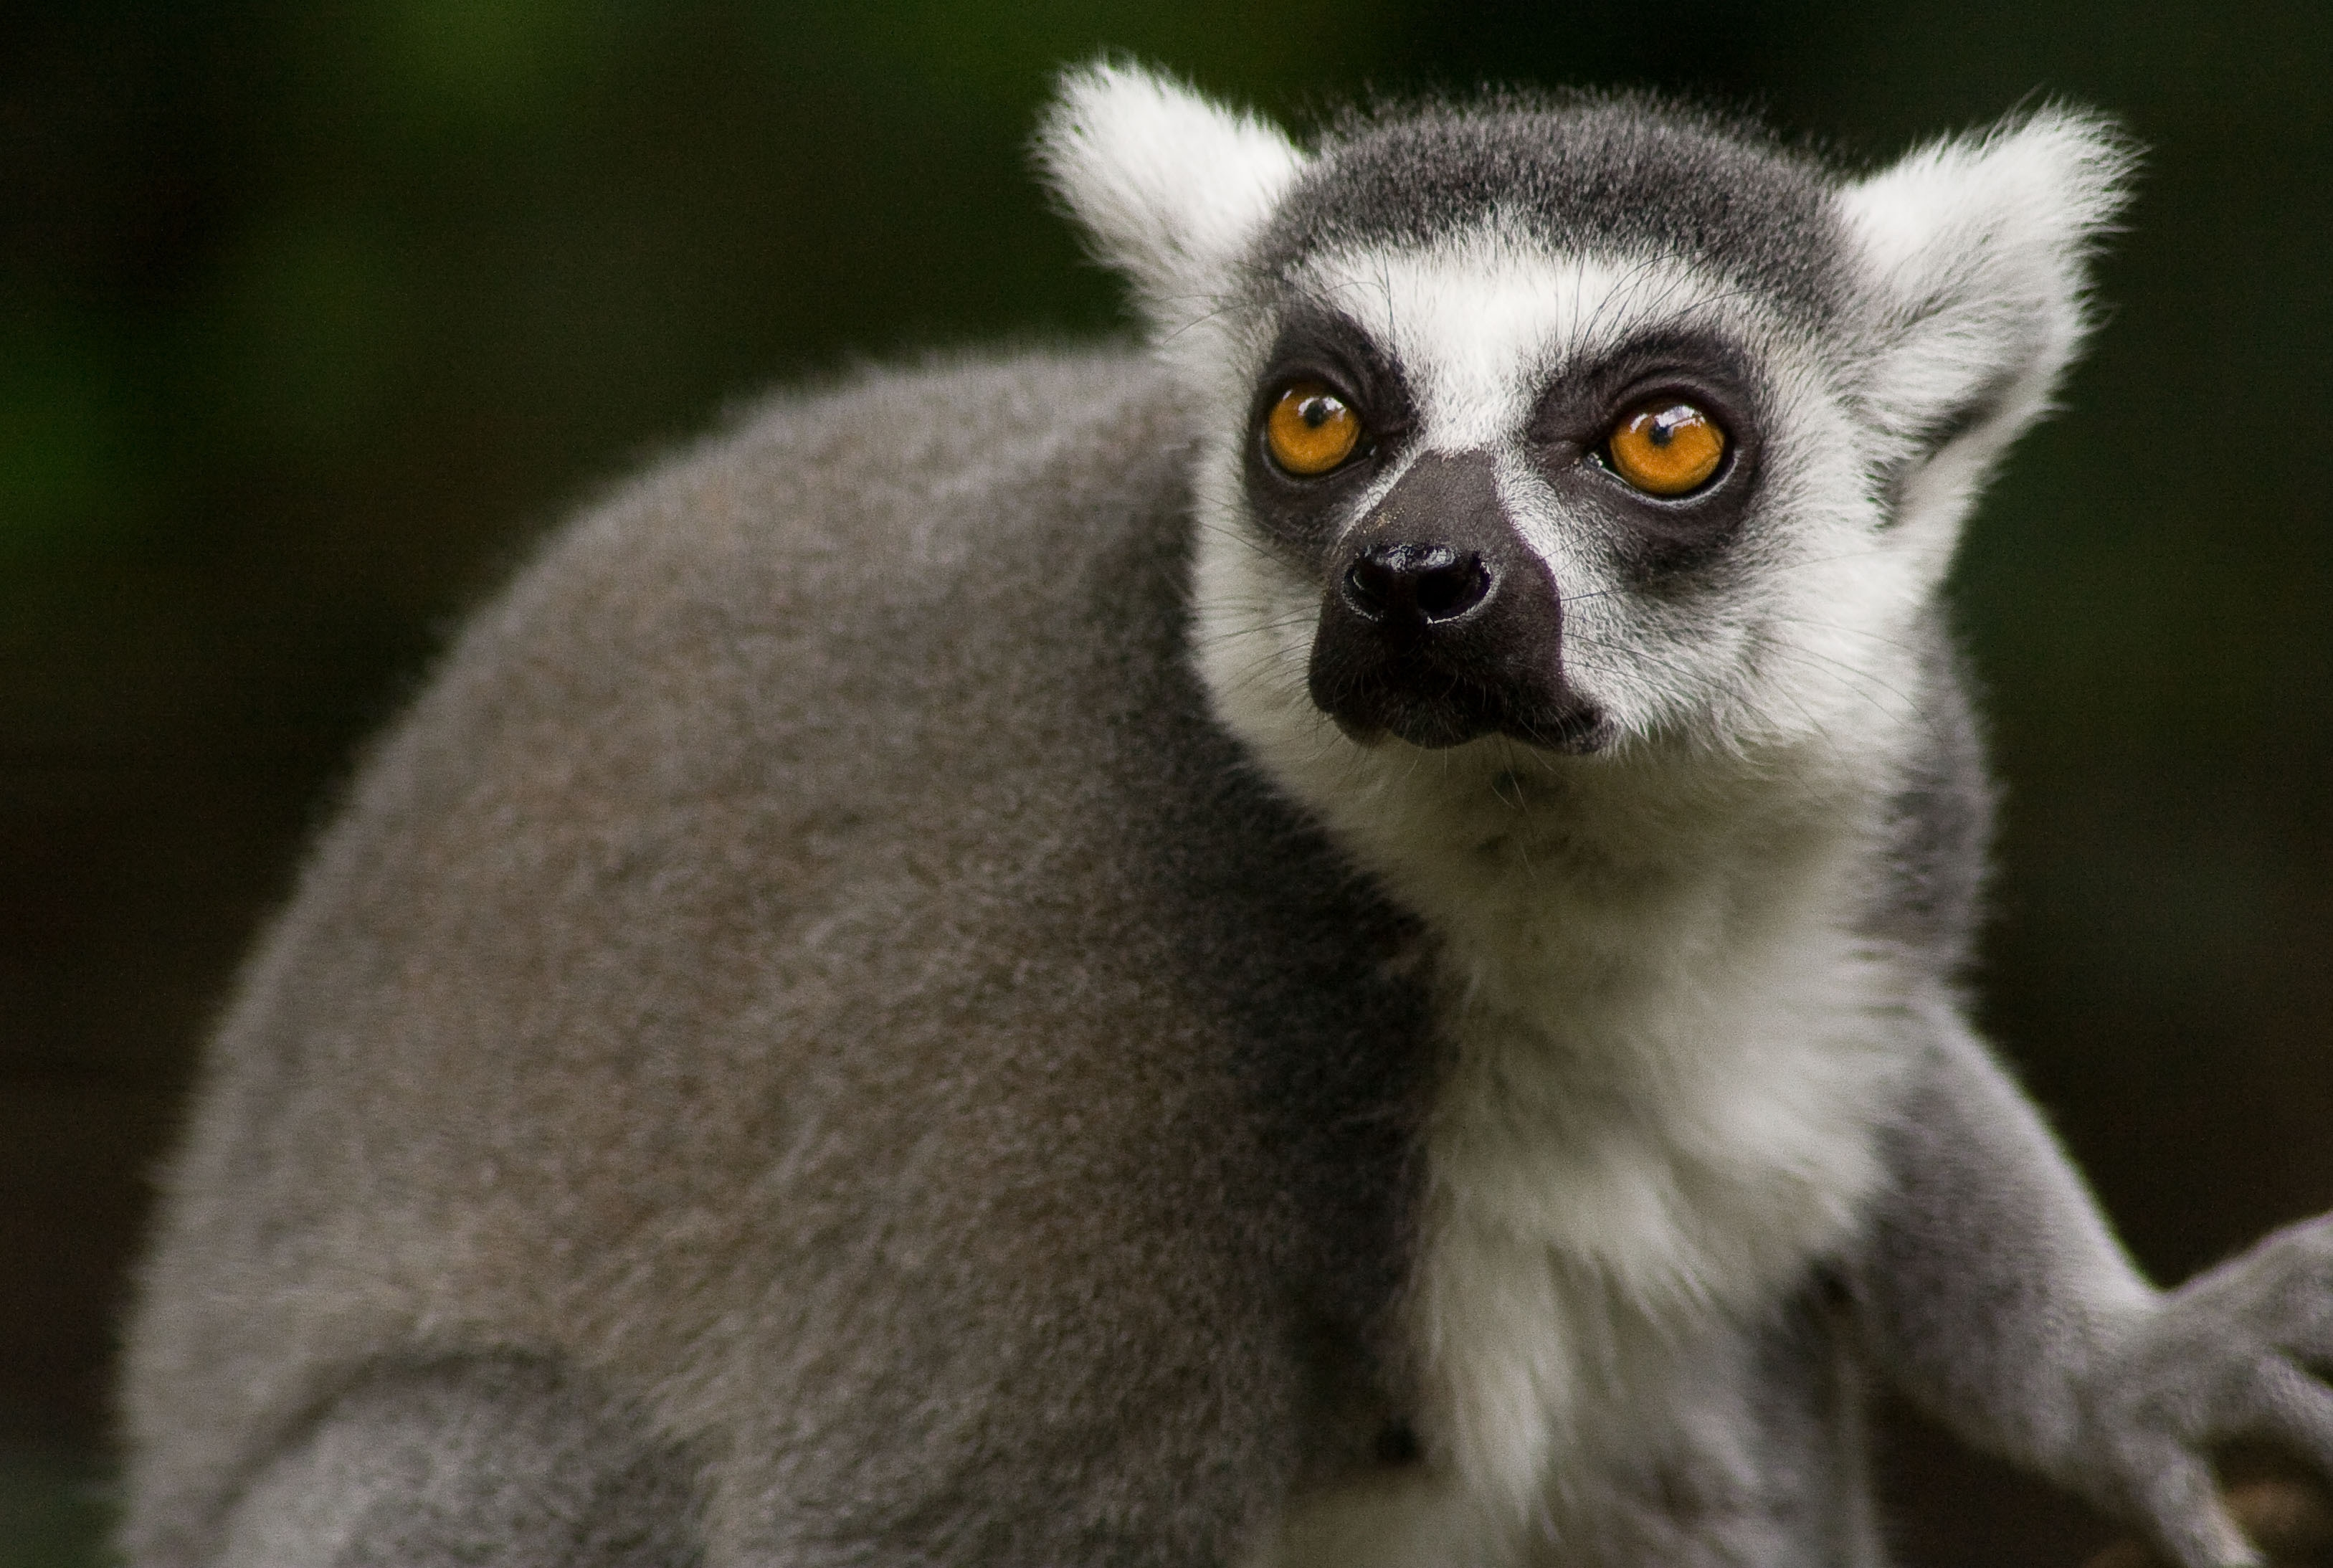 76624 download wallpaper Animals, Lemur, Muzzle, Sight, Opinion, Animal screensavers and pictures for free